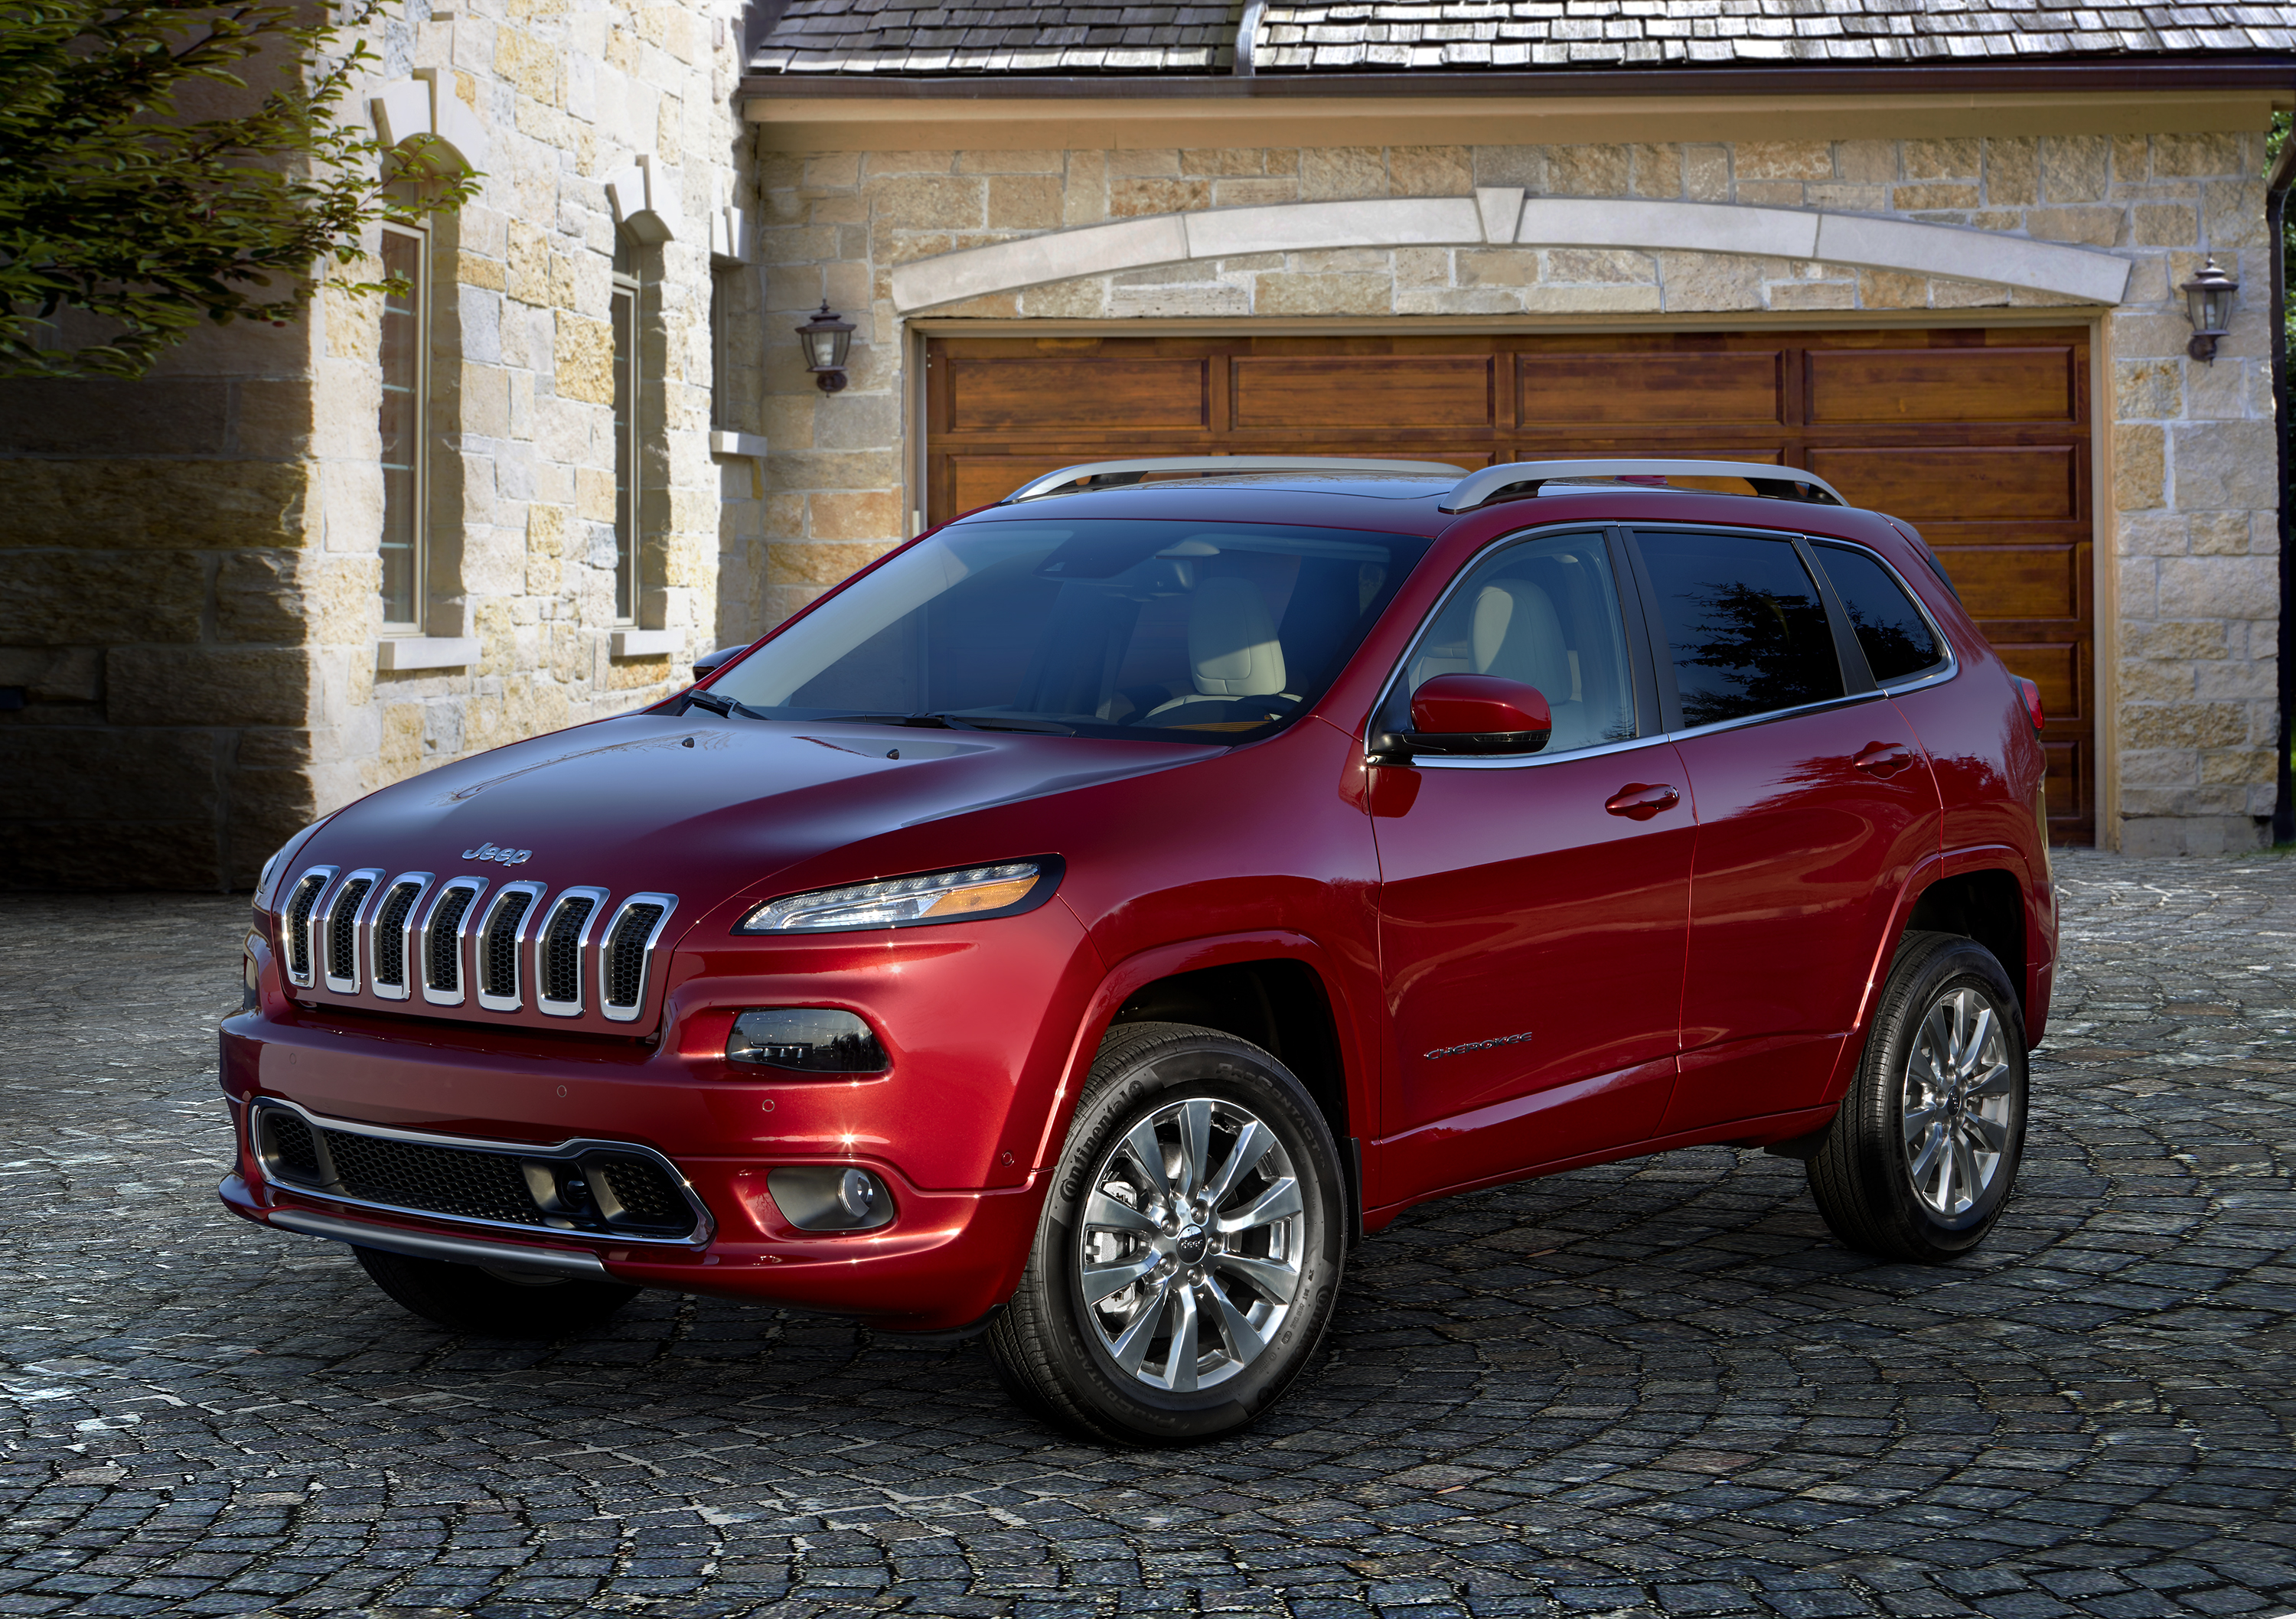 Jeep Cherokee revealed ahead of Detroit motor show